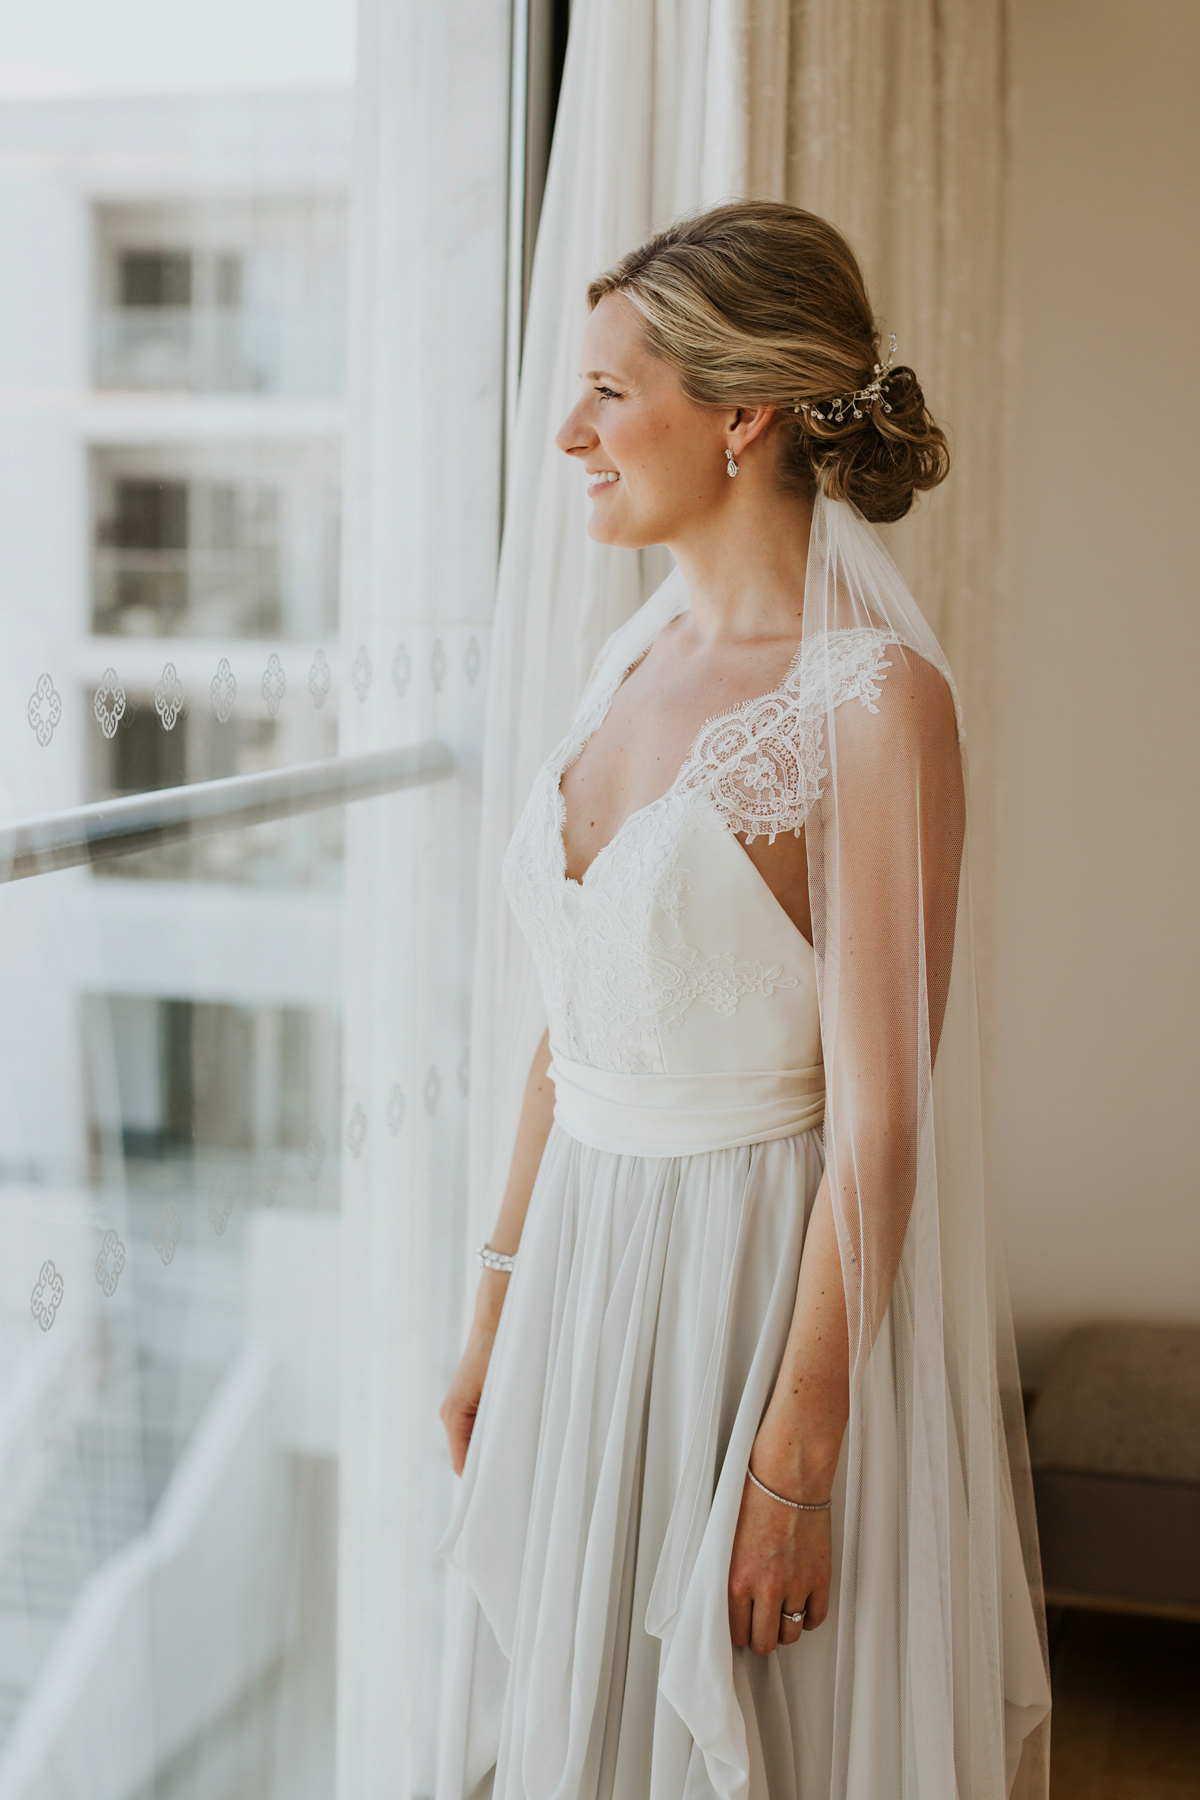 A Two-Toned Truvelle Dress for a Romantic Waterside Wedding in Portugal (Weddings )